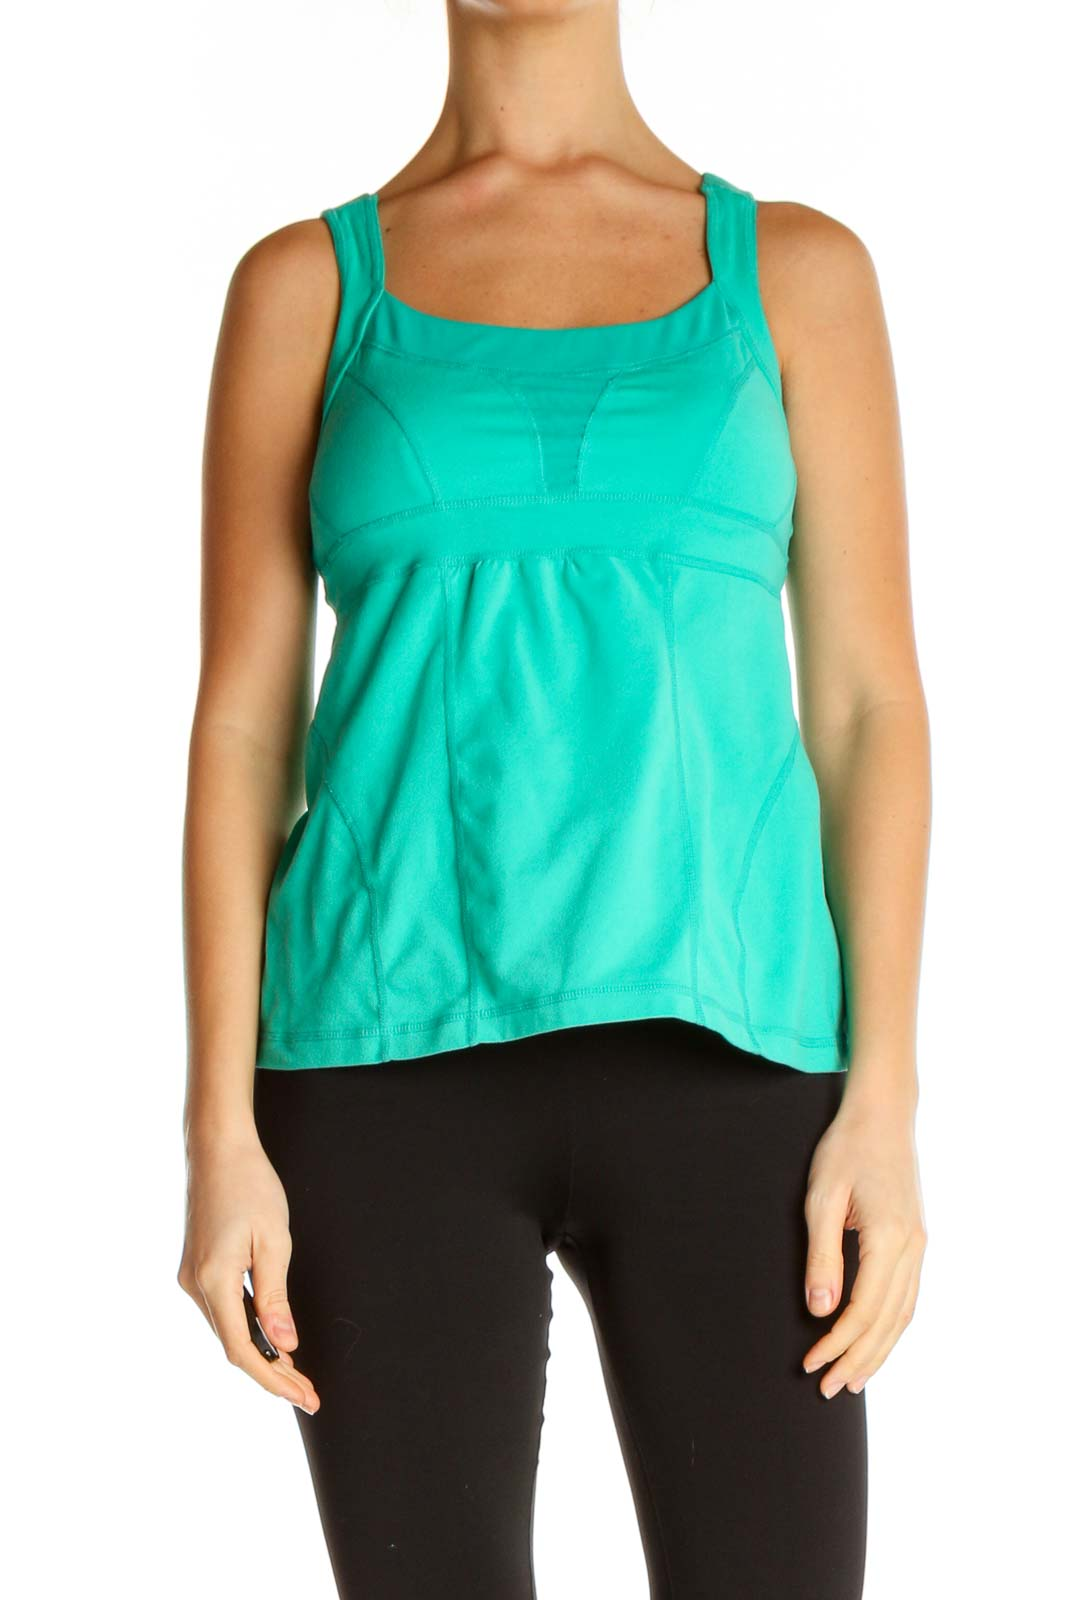 Green Solid Activewear Tank Top Front